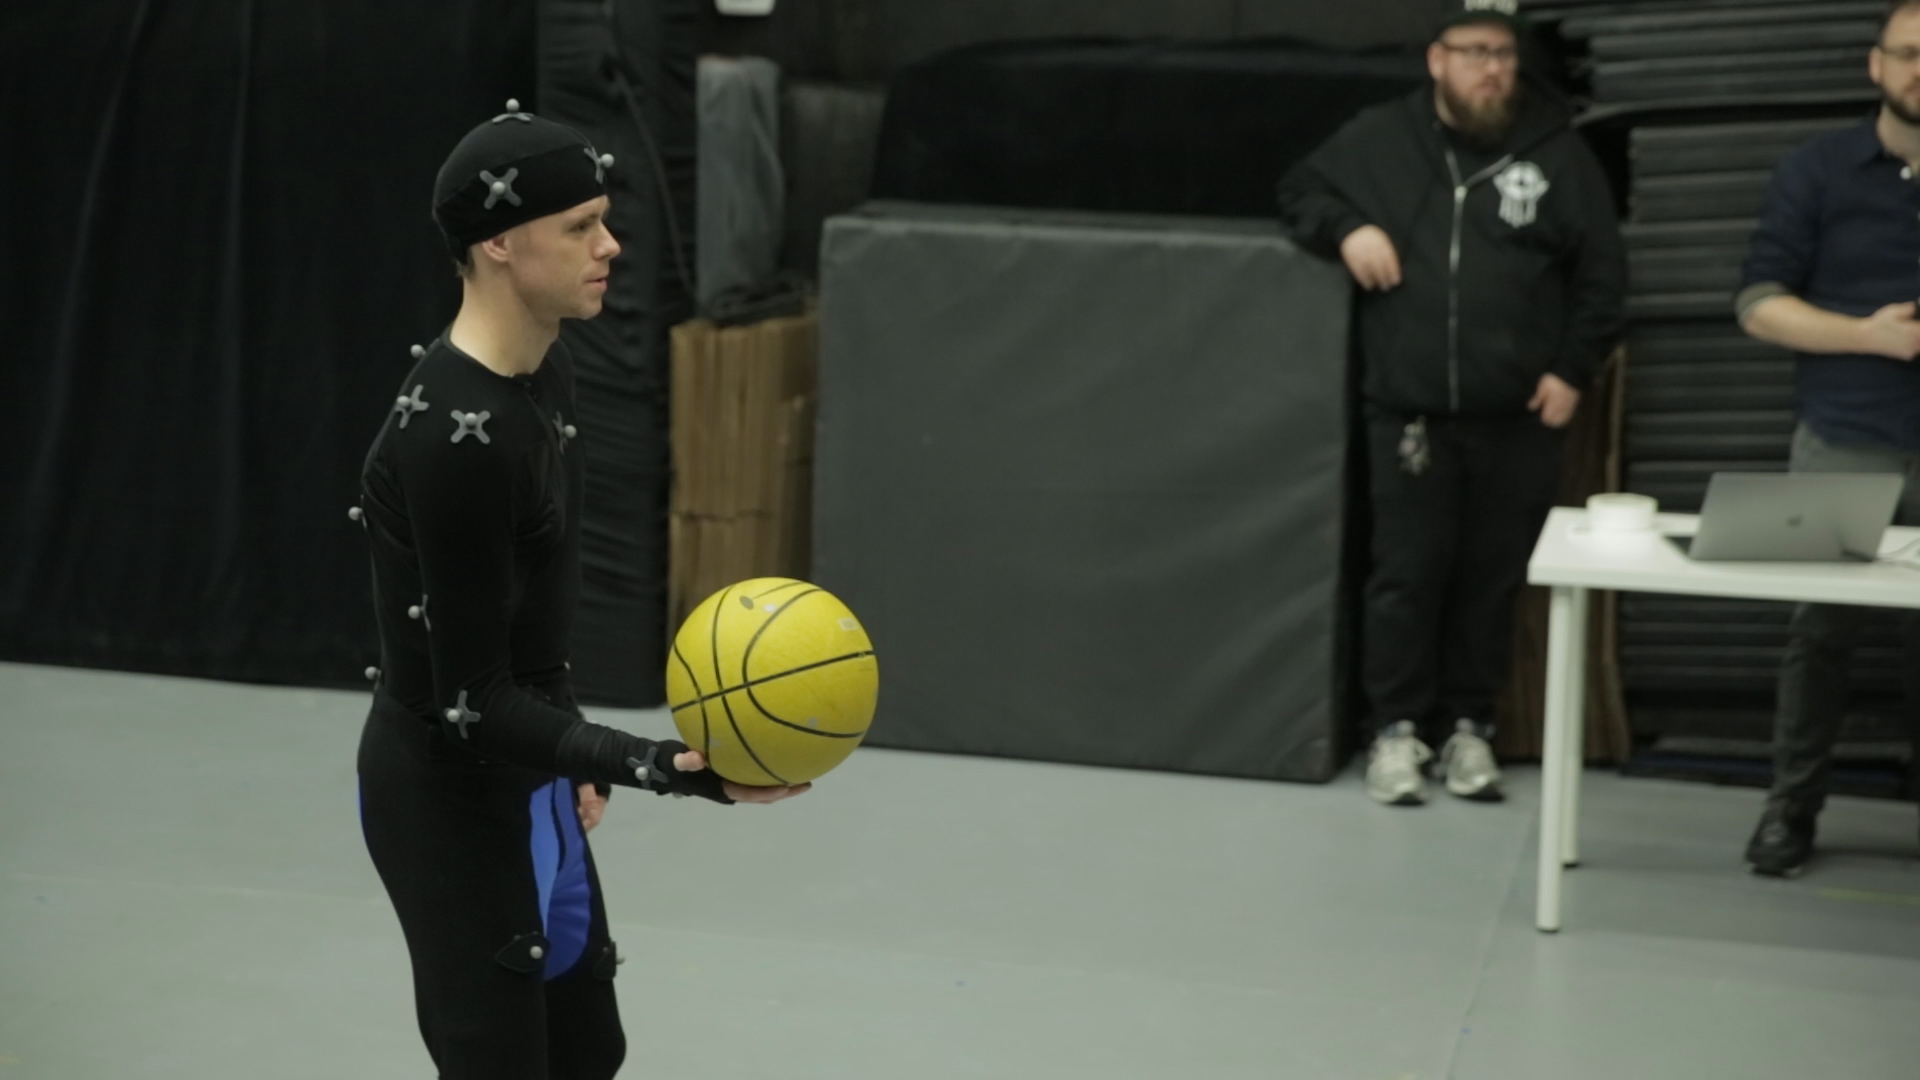 Got Handles - The Professor in motion capture suit